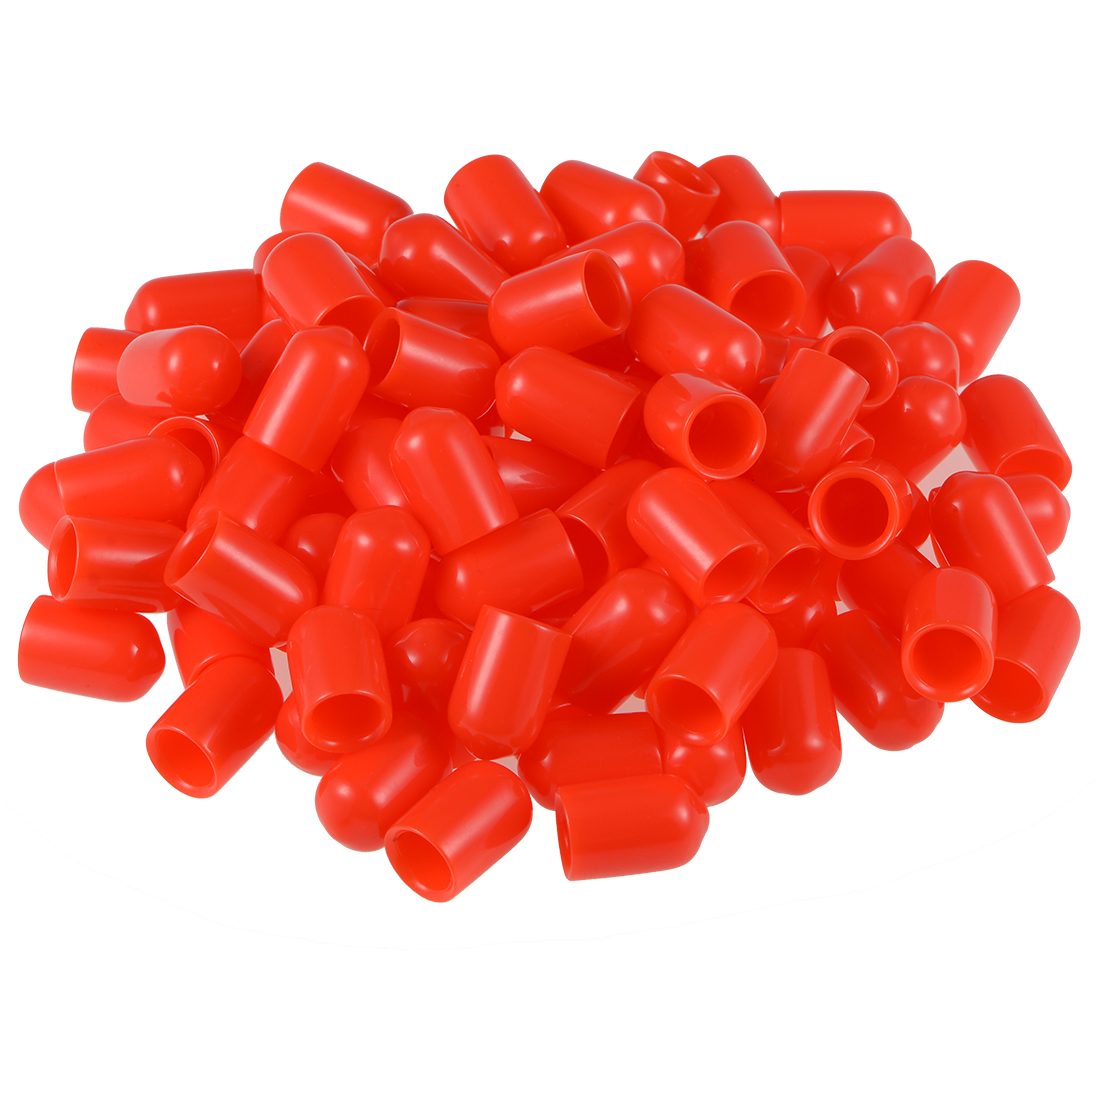 Screw Thread Protectors, 8.5mm ID 15mm Length Round End Cap Cover Red 100pcs